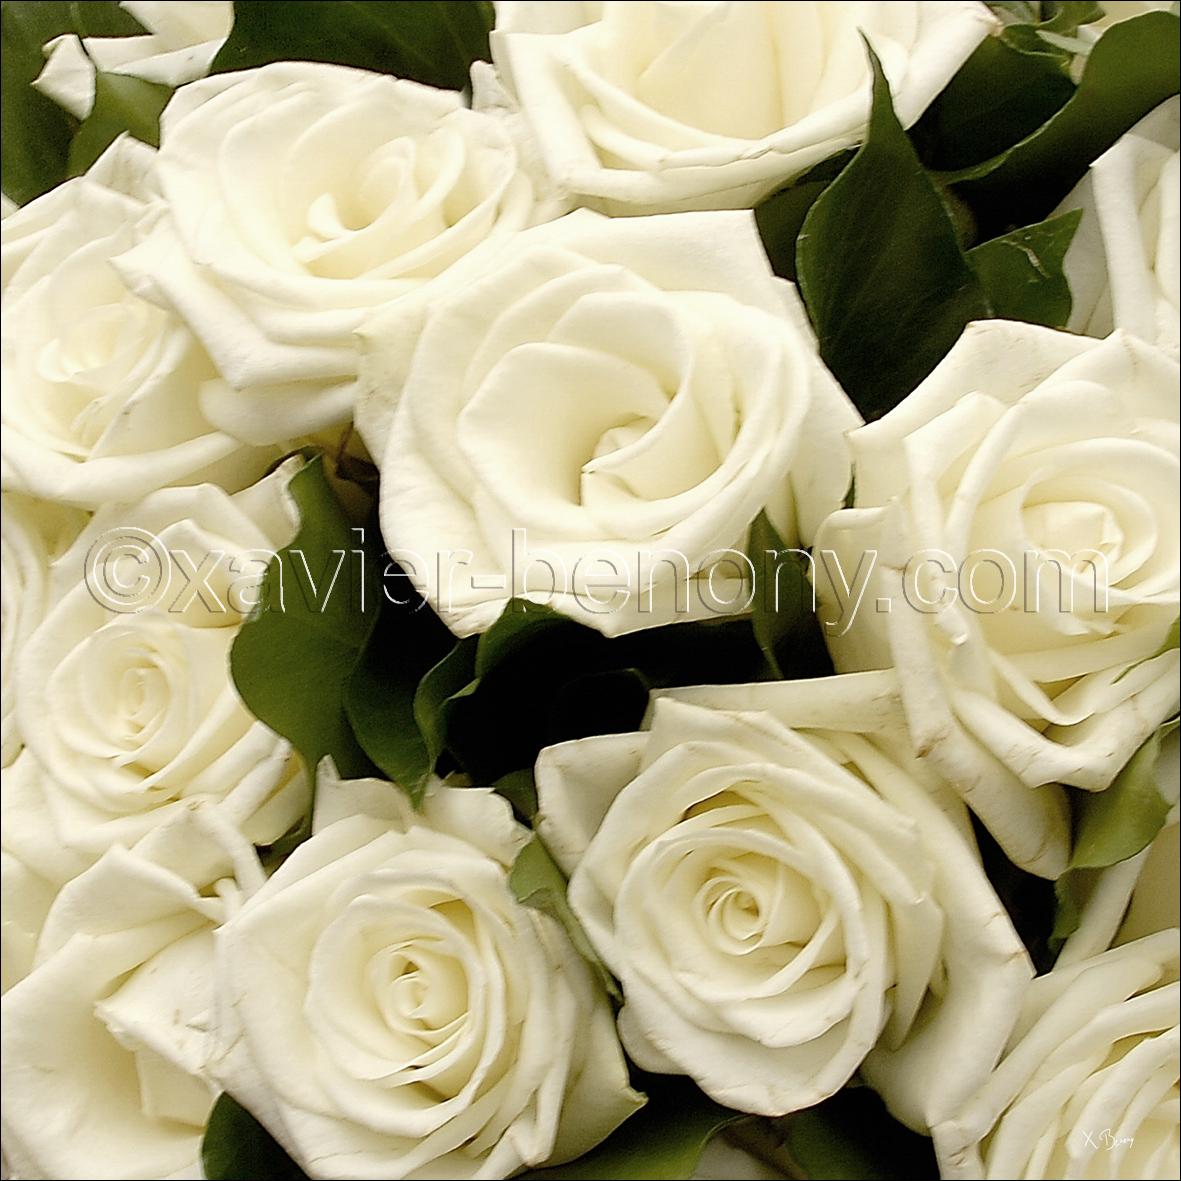 Un teint parfait le blog de no mie for Bouquet de roses blanches